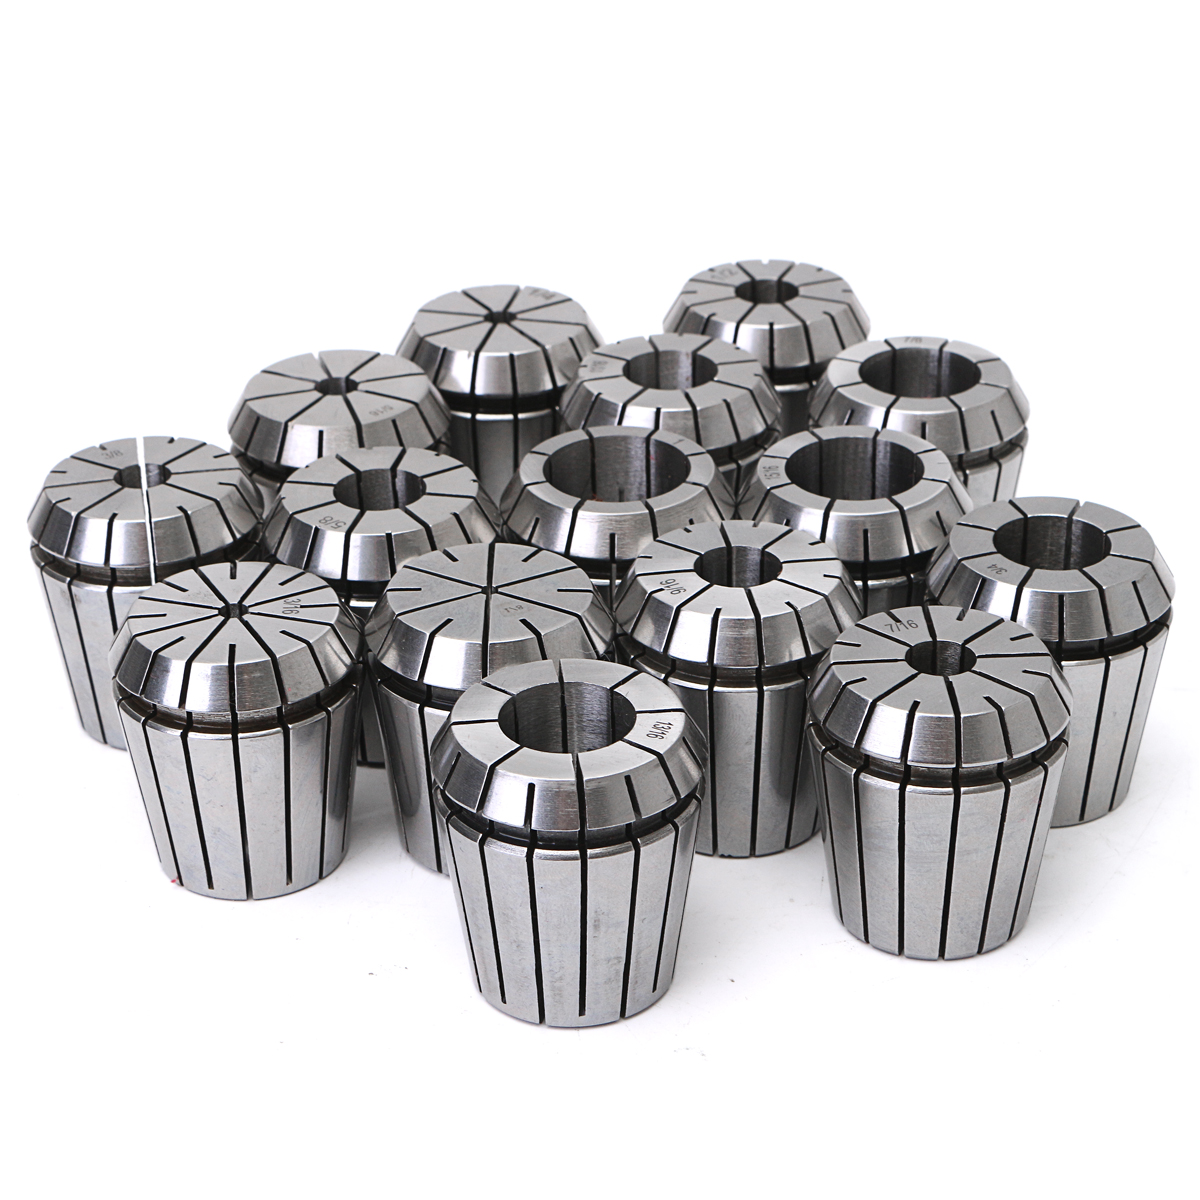 Drillpro 15Pcs 1/8 to 1 Inch ER40 Spring Collet Set for CNC Milling Lathe Tool for Alloy Spring Steel Milling Lathe 1pcs er 40 er40 over size spring collet clamping tool drill chuck arbors for cnc milling lathe tool milling cutter din 6499b